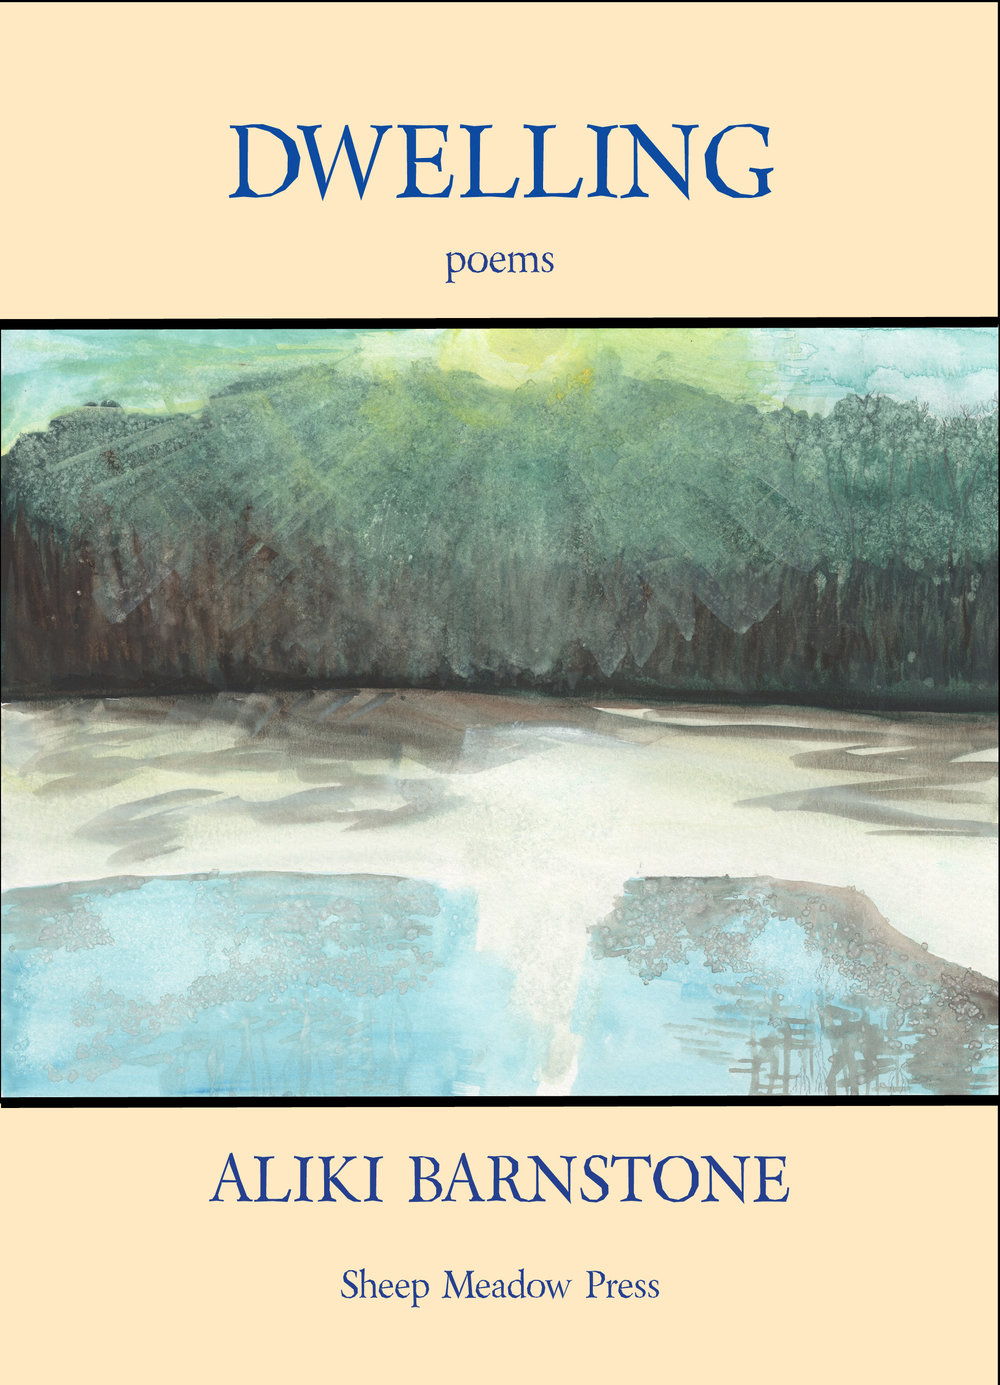 Aliki Barnstone Cover.jpg